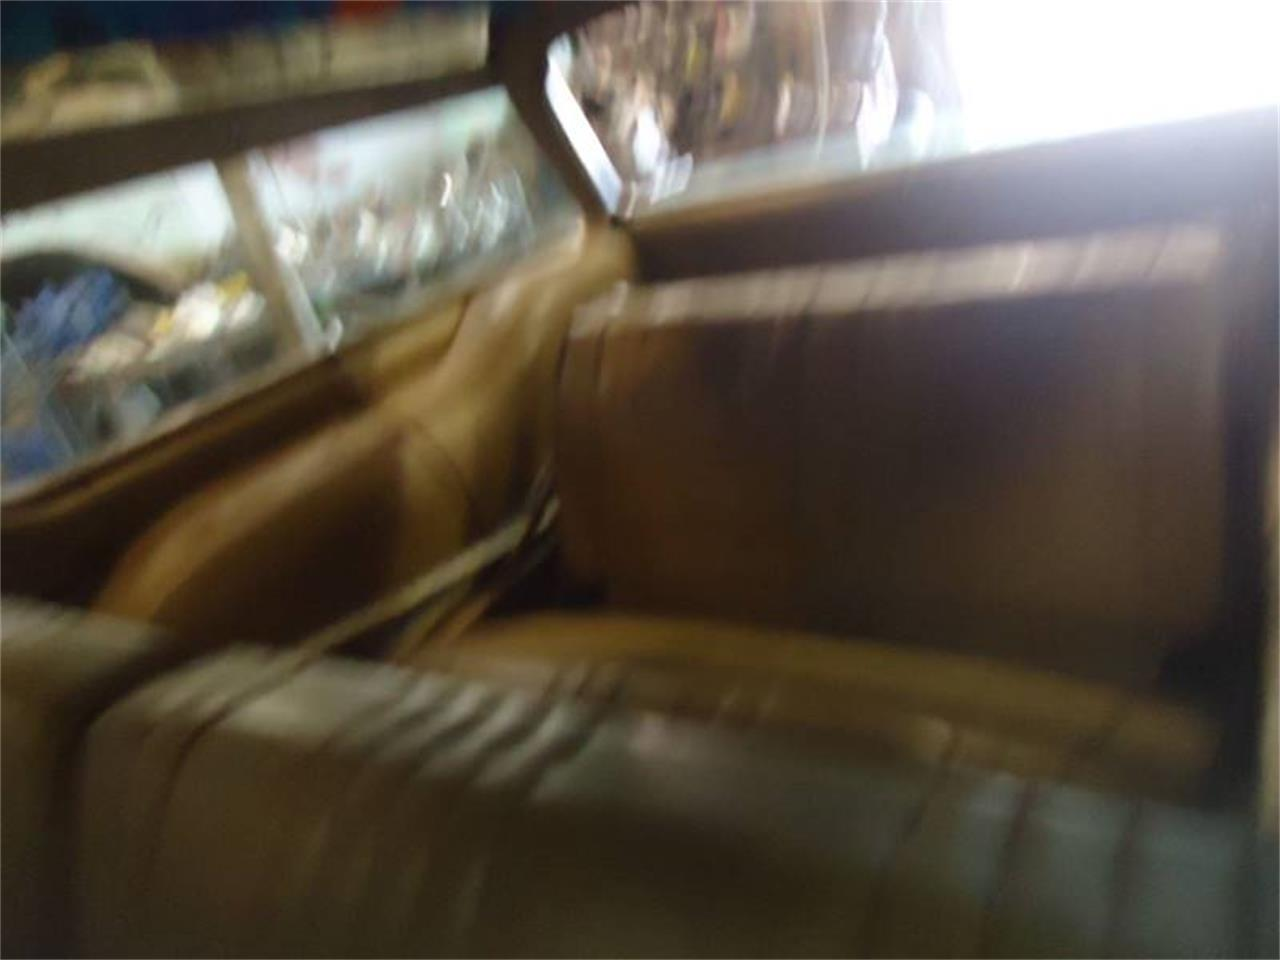 1965 sport wagon glass roof buick for sale in Jackson, MI – photo 2